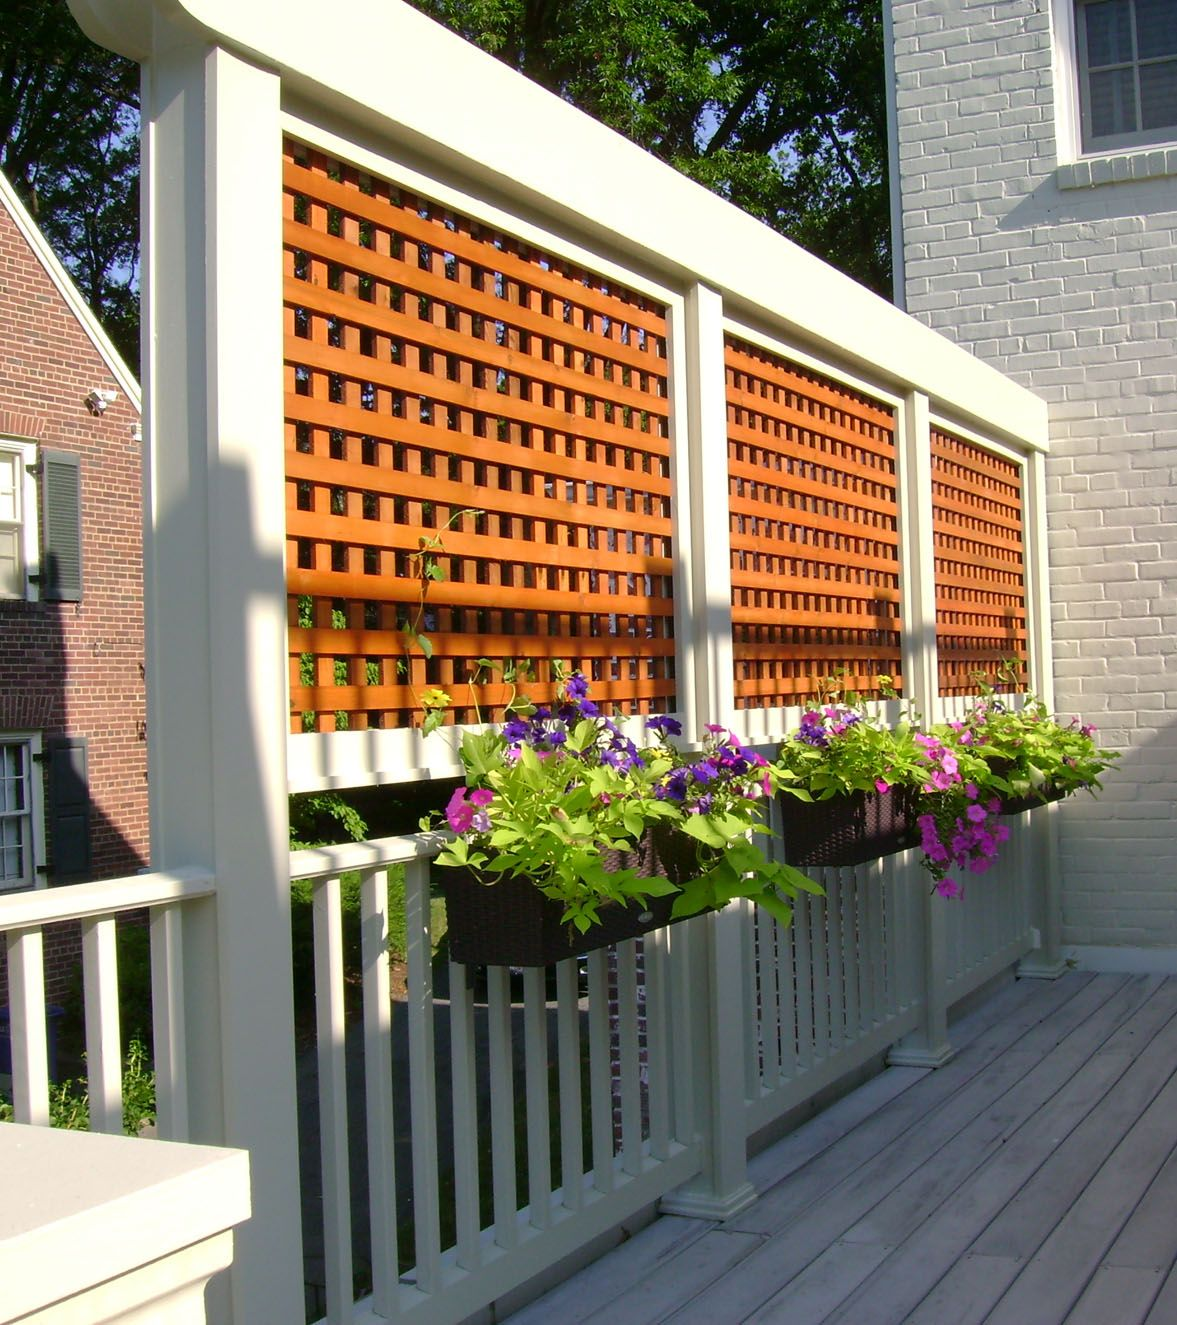 A little privacy makes for good neighbors petro design for Creating privacy on patio